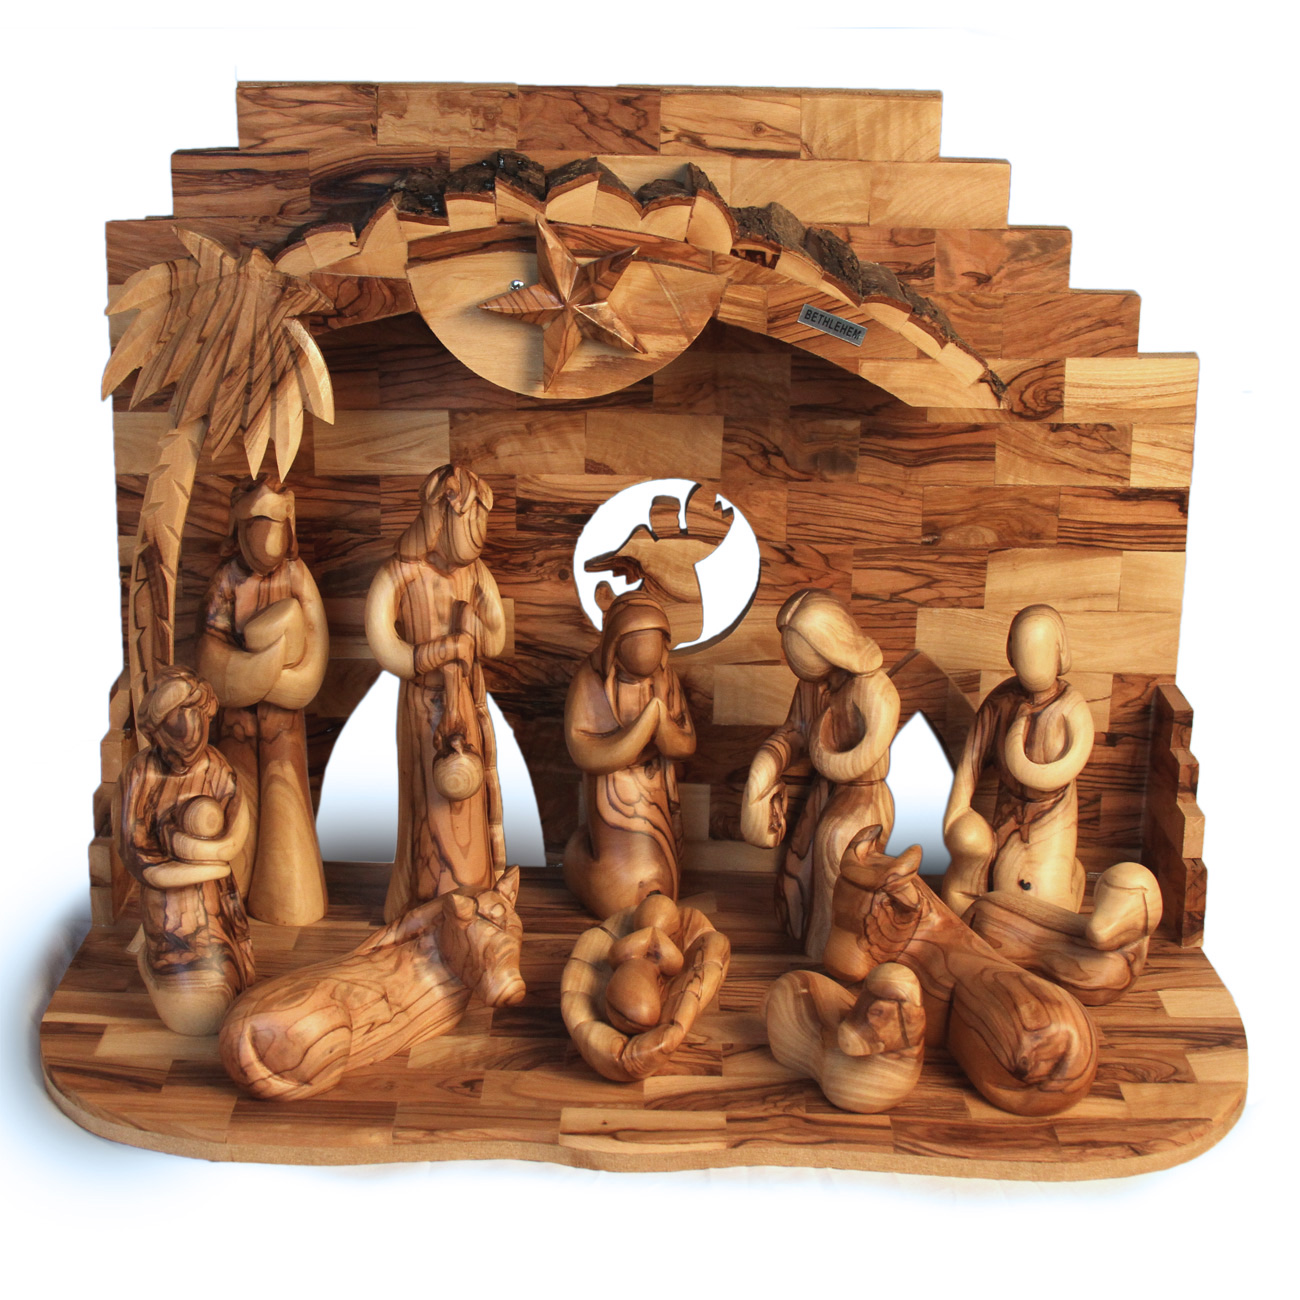 ONXLF-858-3.jpg Extra Large Musical Nativity Set